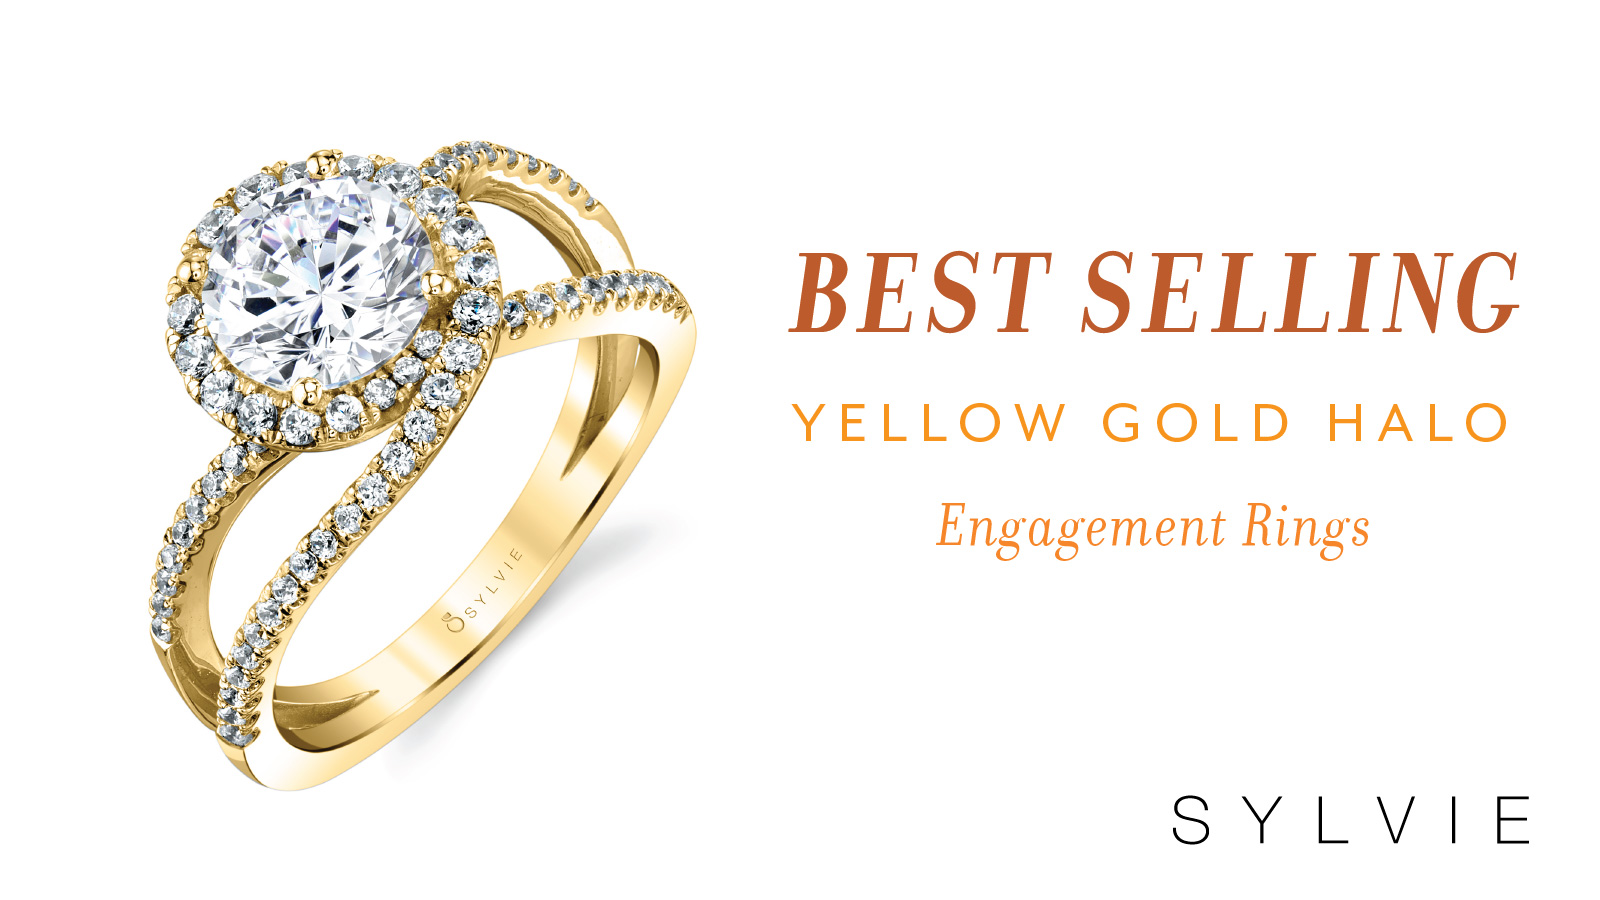 Best Selling Yellow Gold Halo Engagement Rings -Sylvie Collection